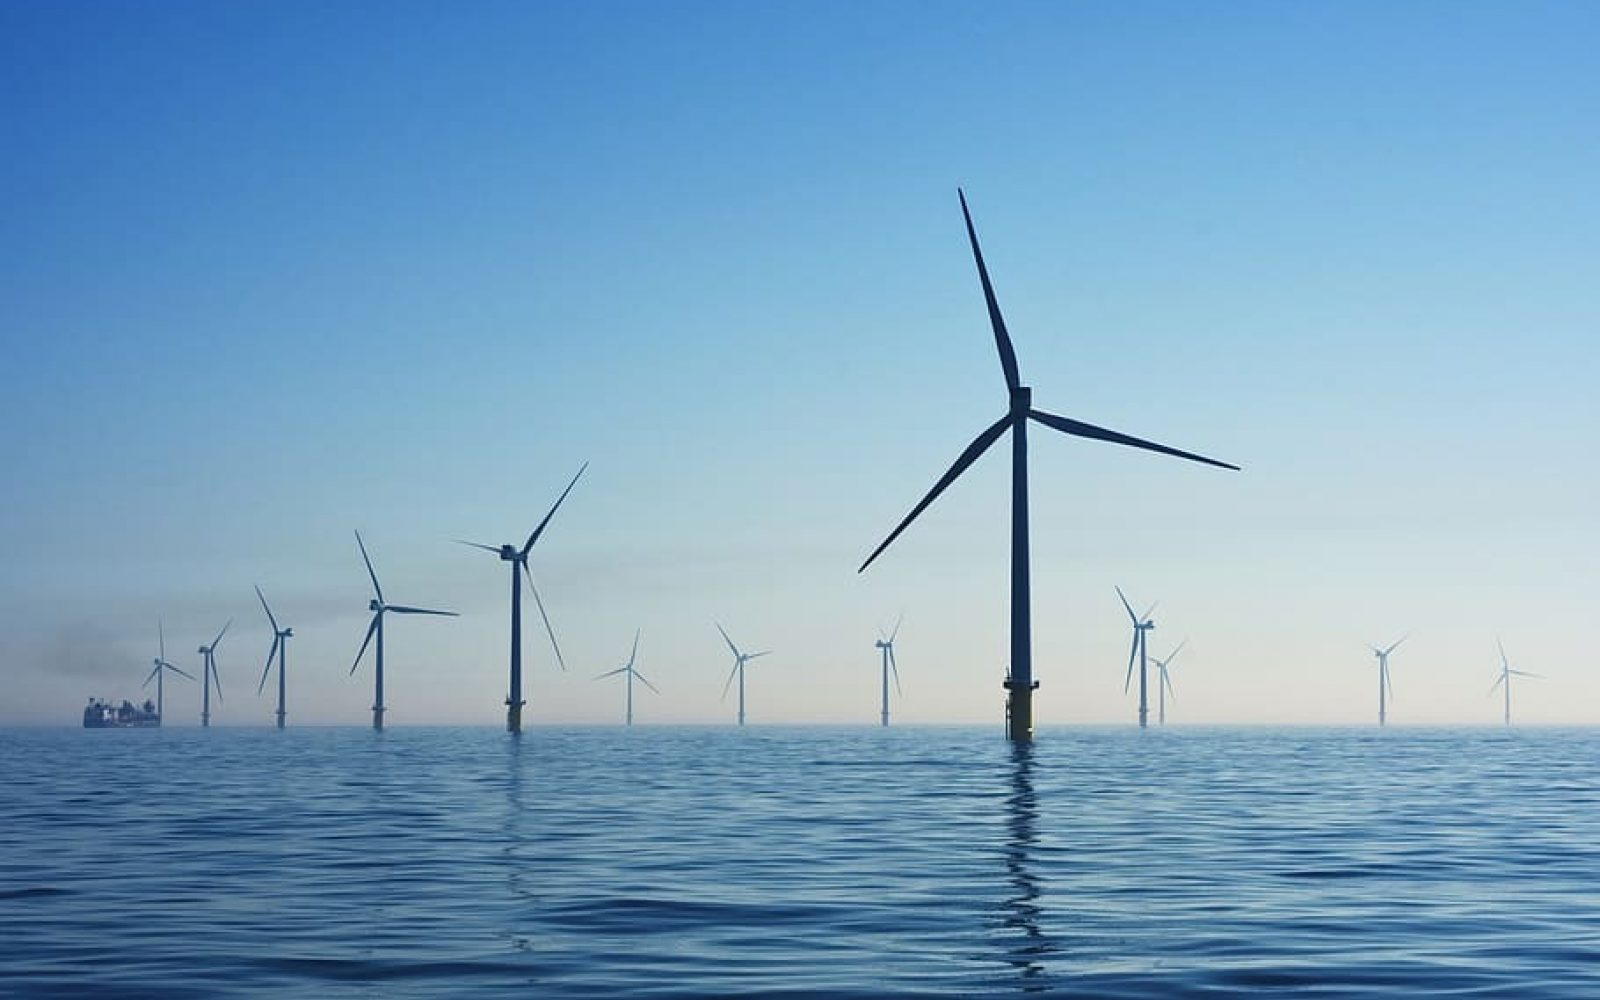 Wind power generated a record 20% of the UK's energy.